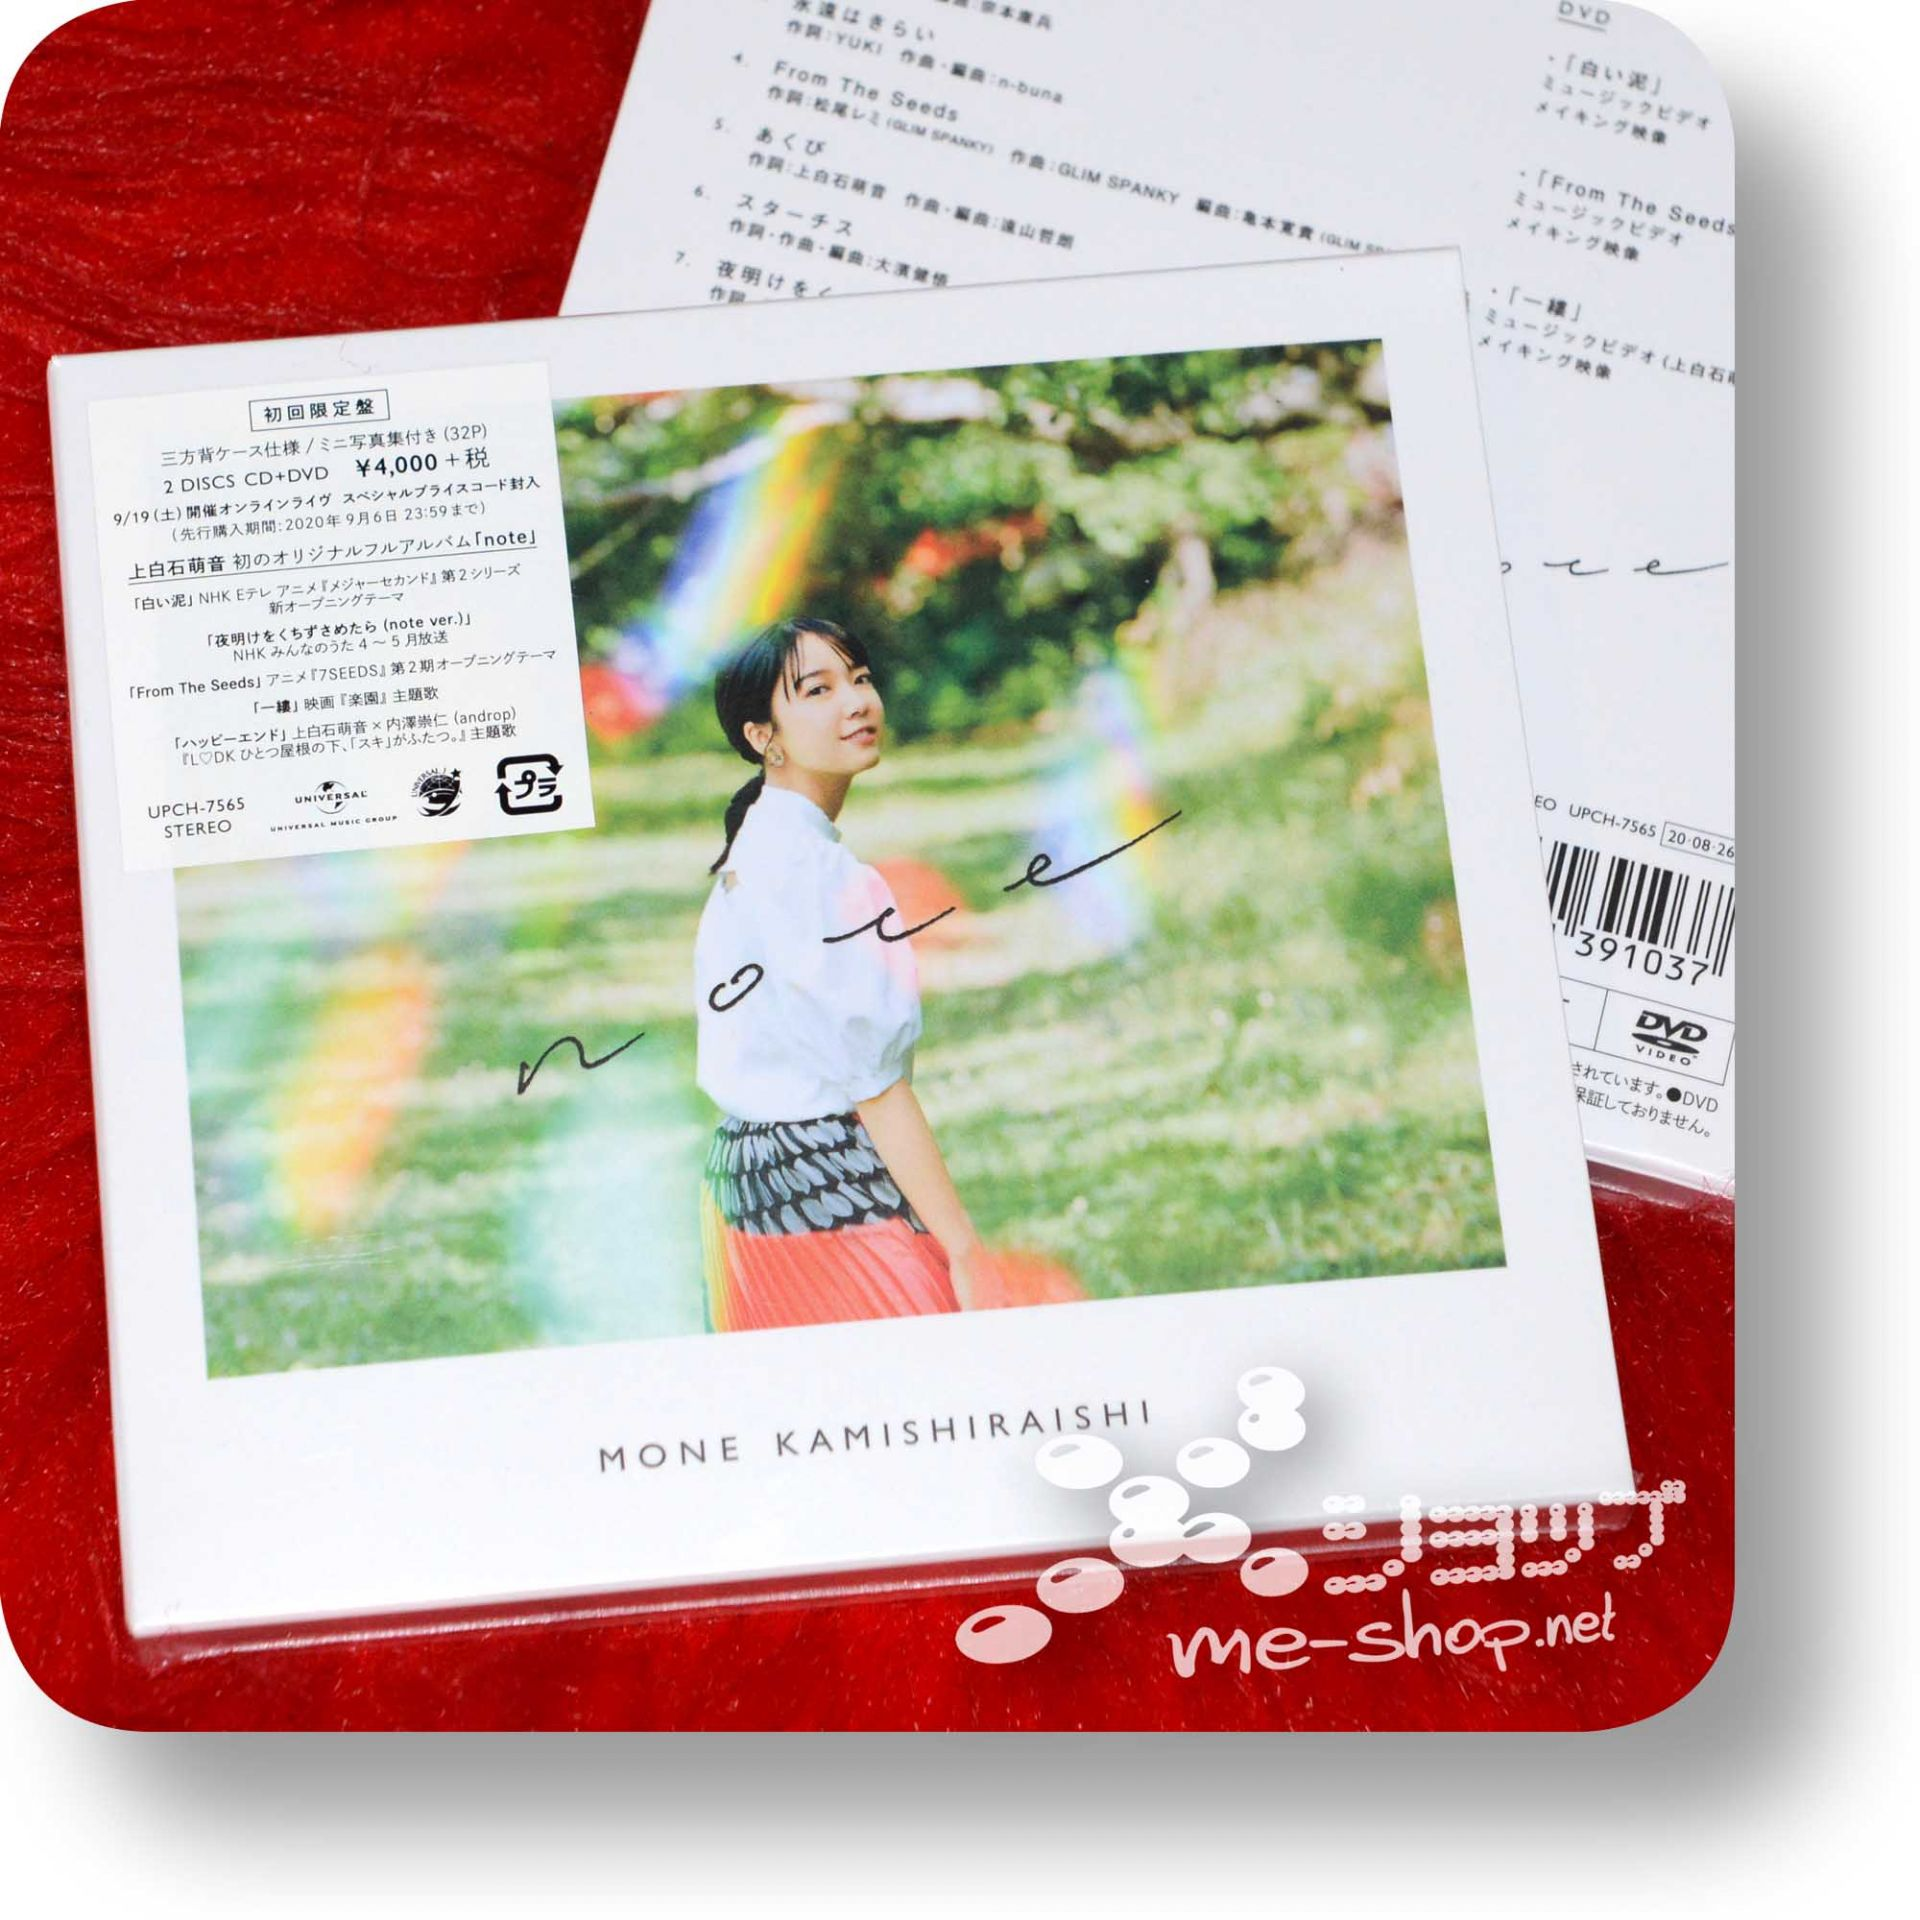 mone kamishiraishi note cd+dvd